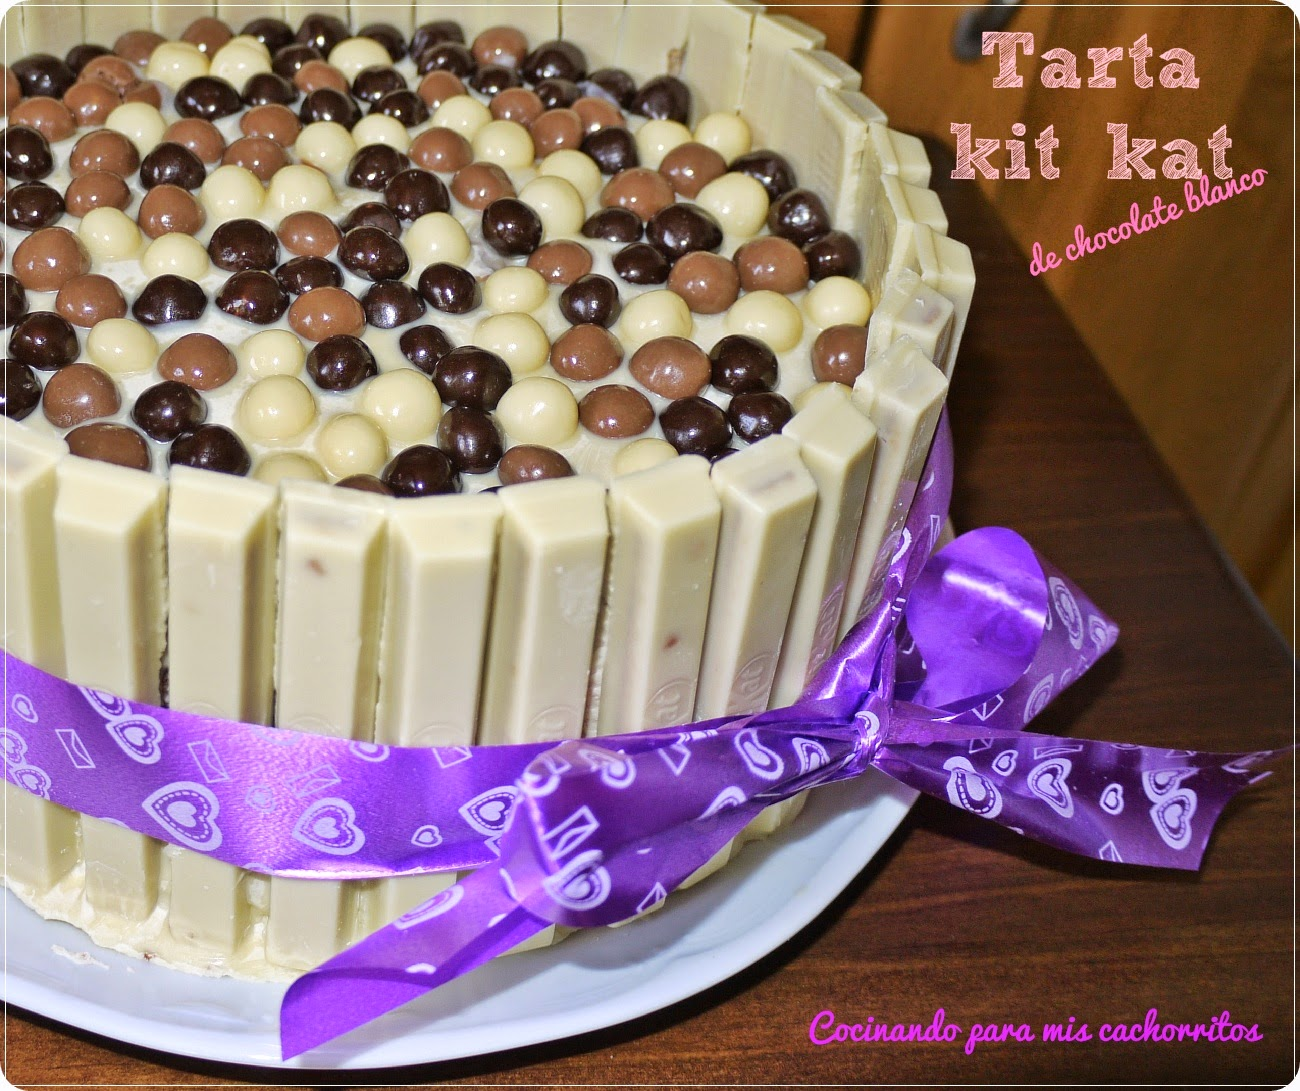 Tarta kit kat chocolate blanco